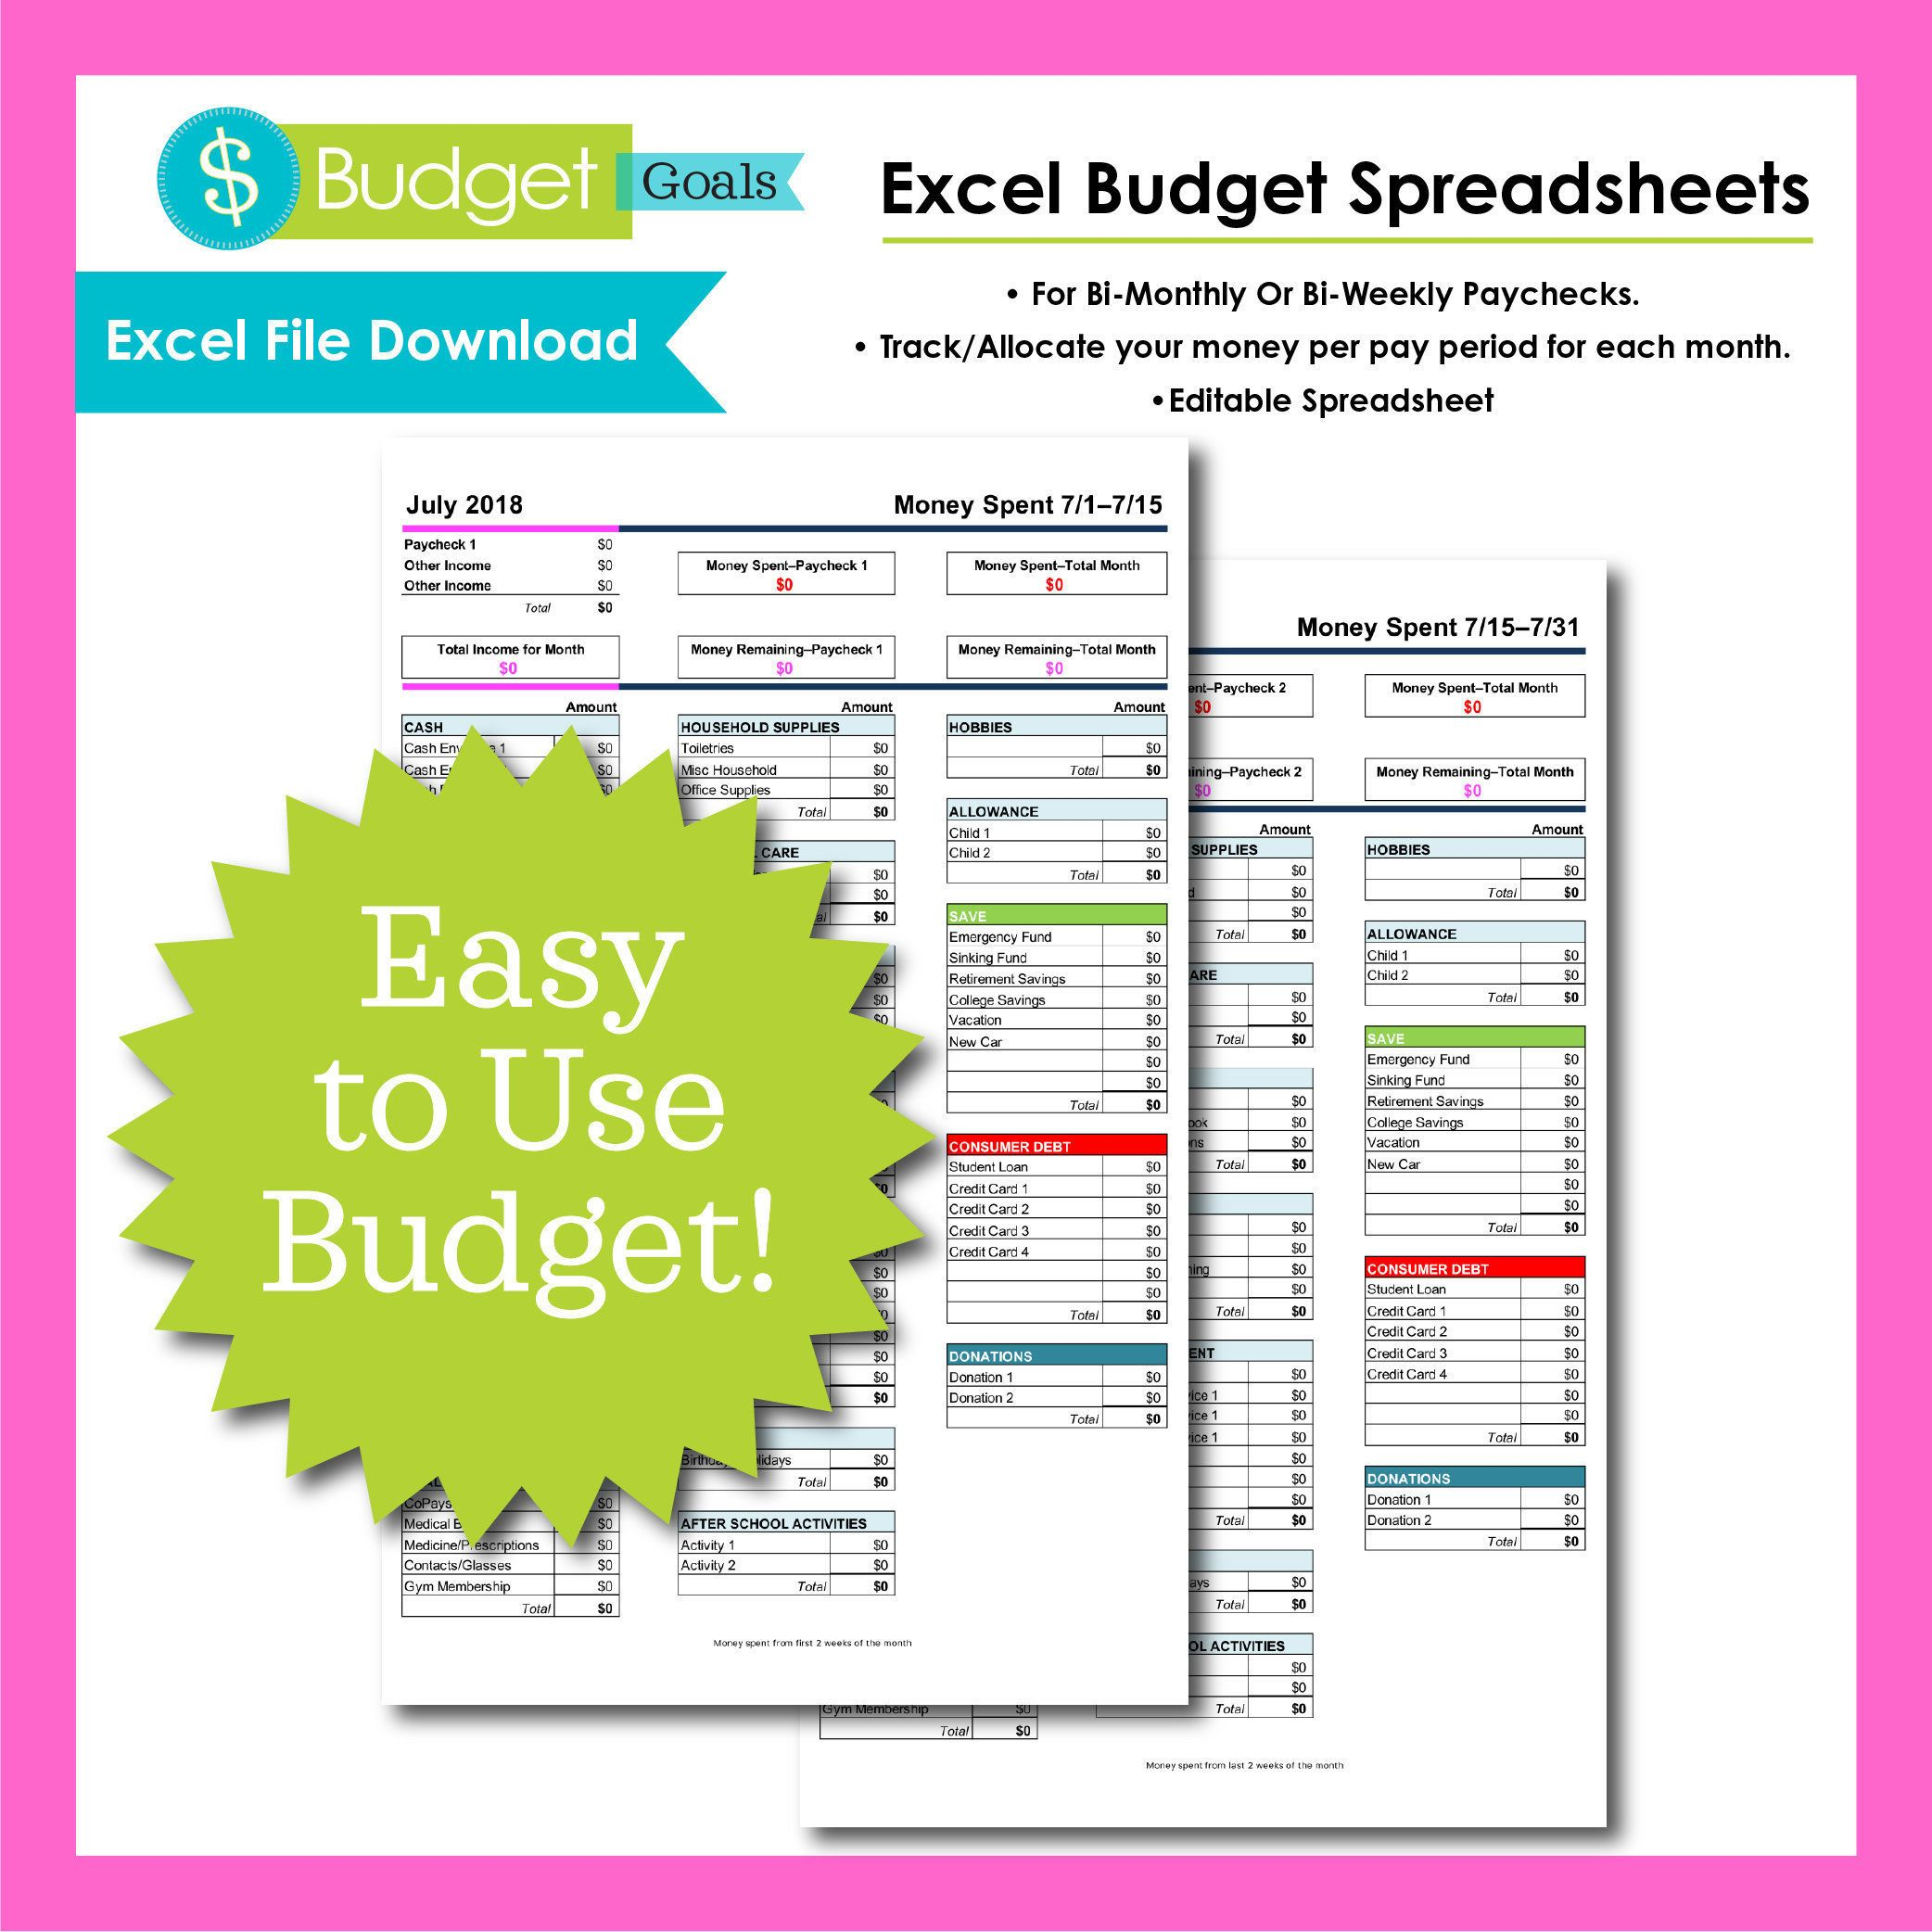 Excel Budget Spreadsheet Instant Download